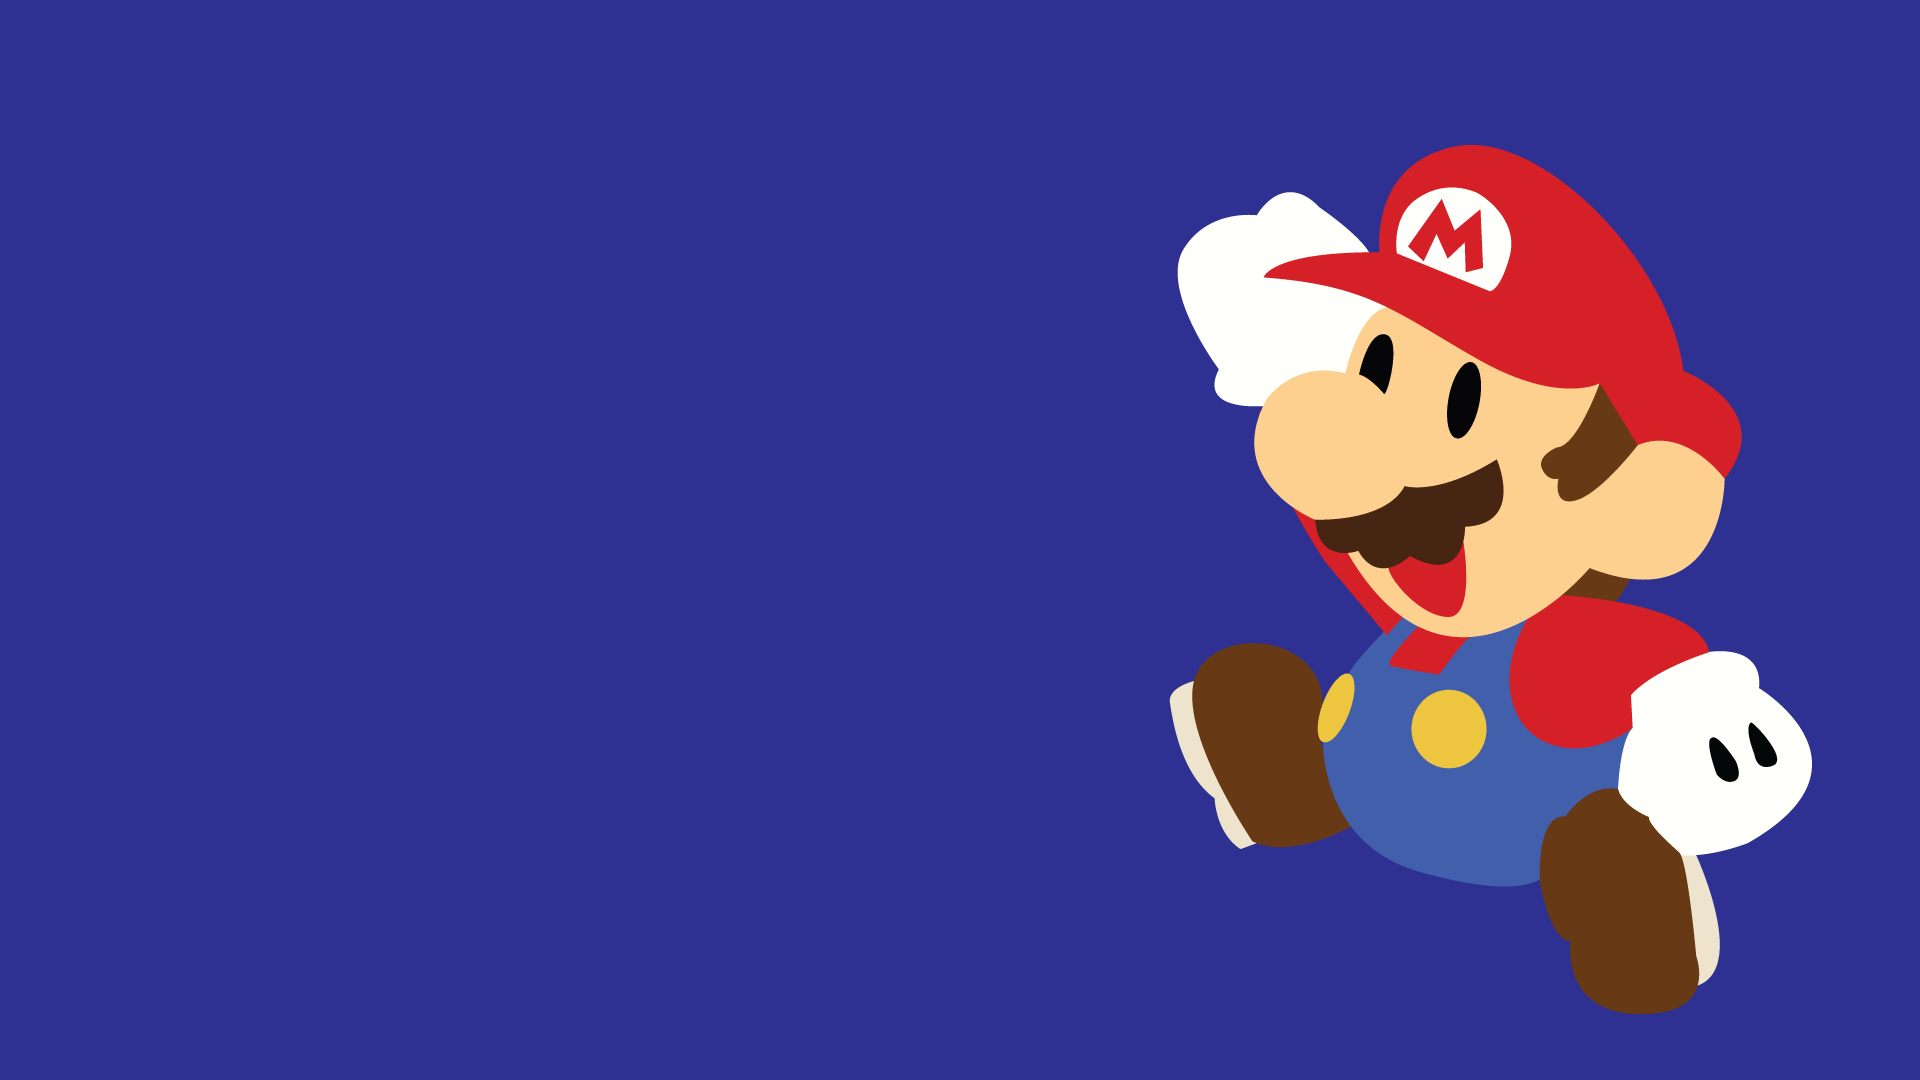 cool mario wallpapers